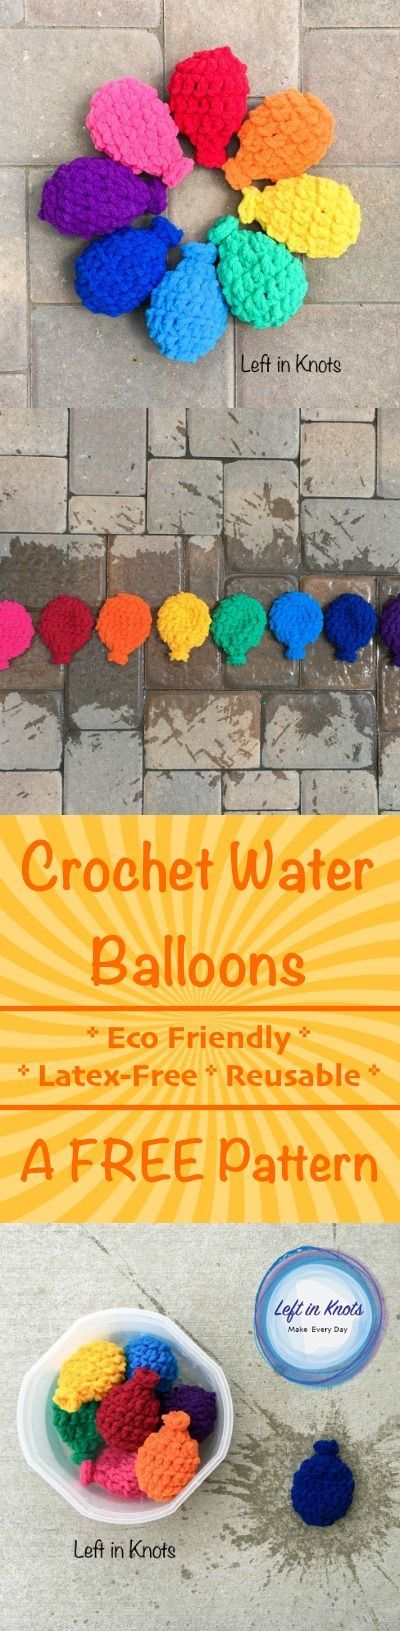 Crochet Pattern Water Balloon : 17 Best images about Crochet Ideas and Inspiration on ...